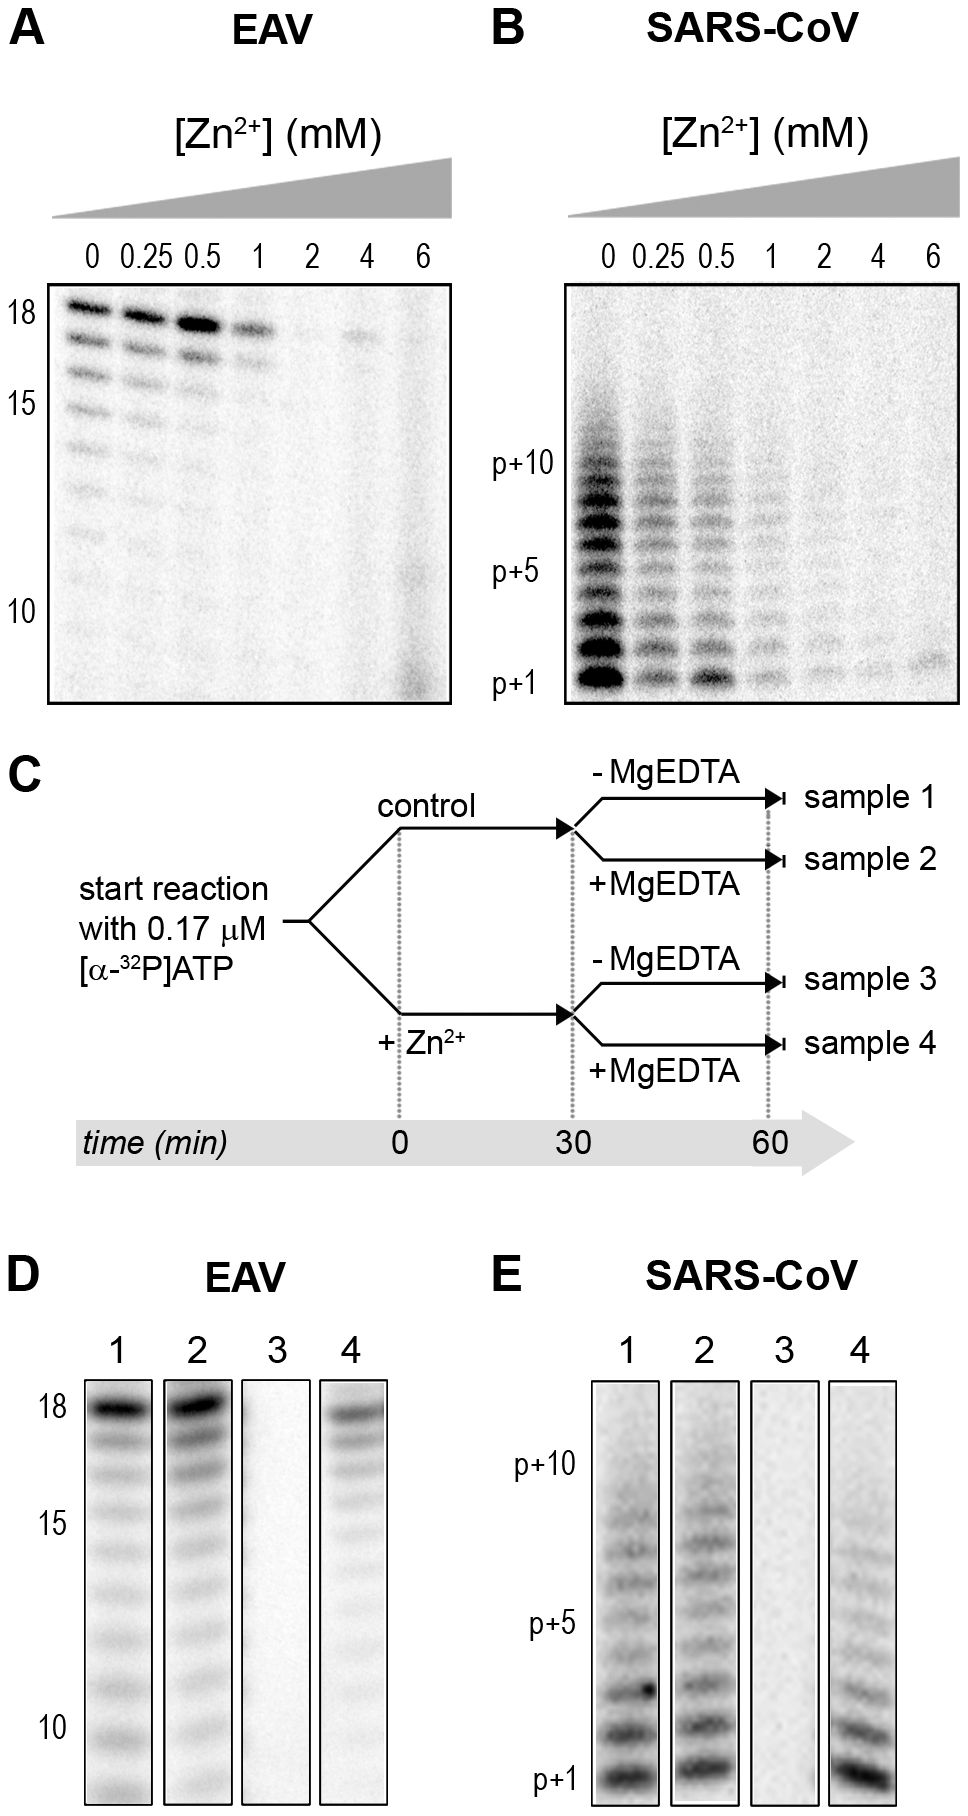 The activity of the RdRps of EAV and SARS-CoV is reversibly inhibited by Zn<sup>2+</sup>.